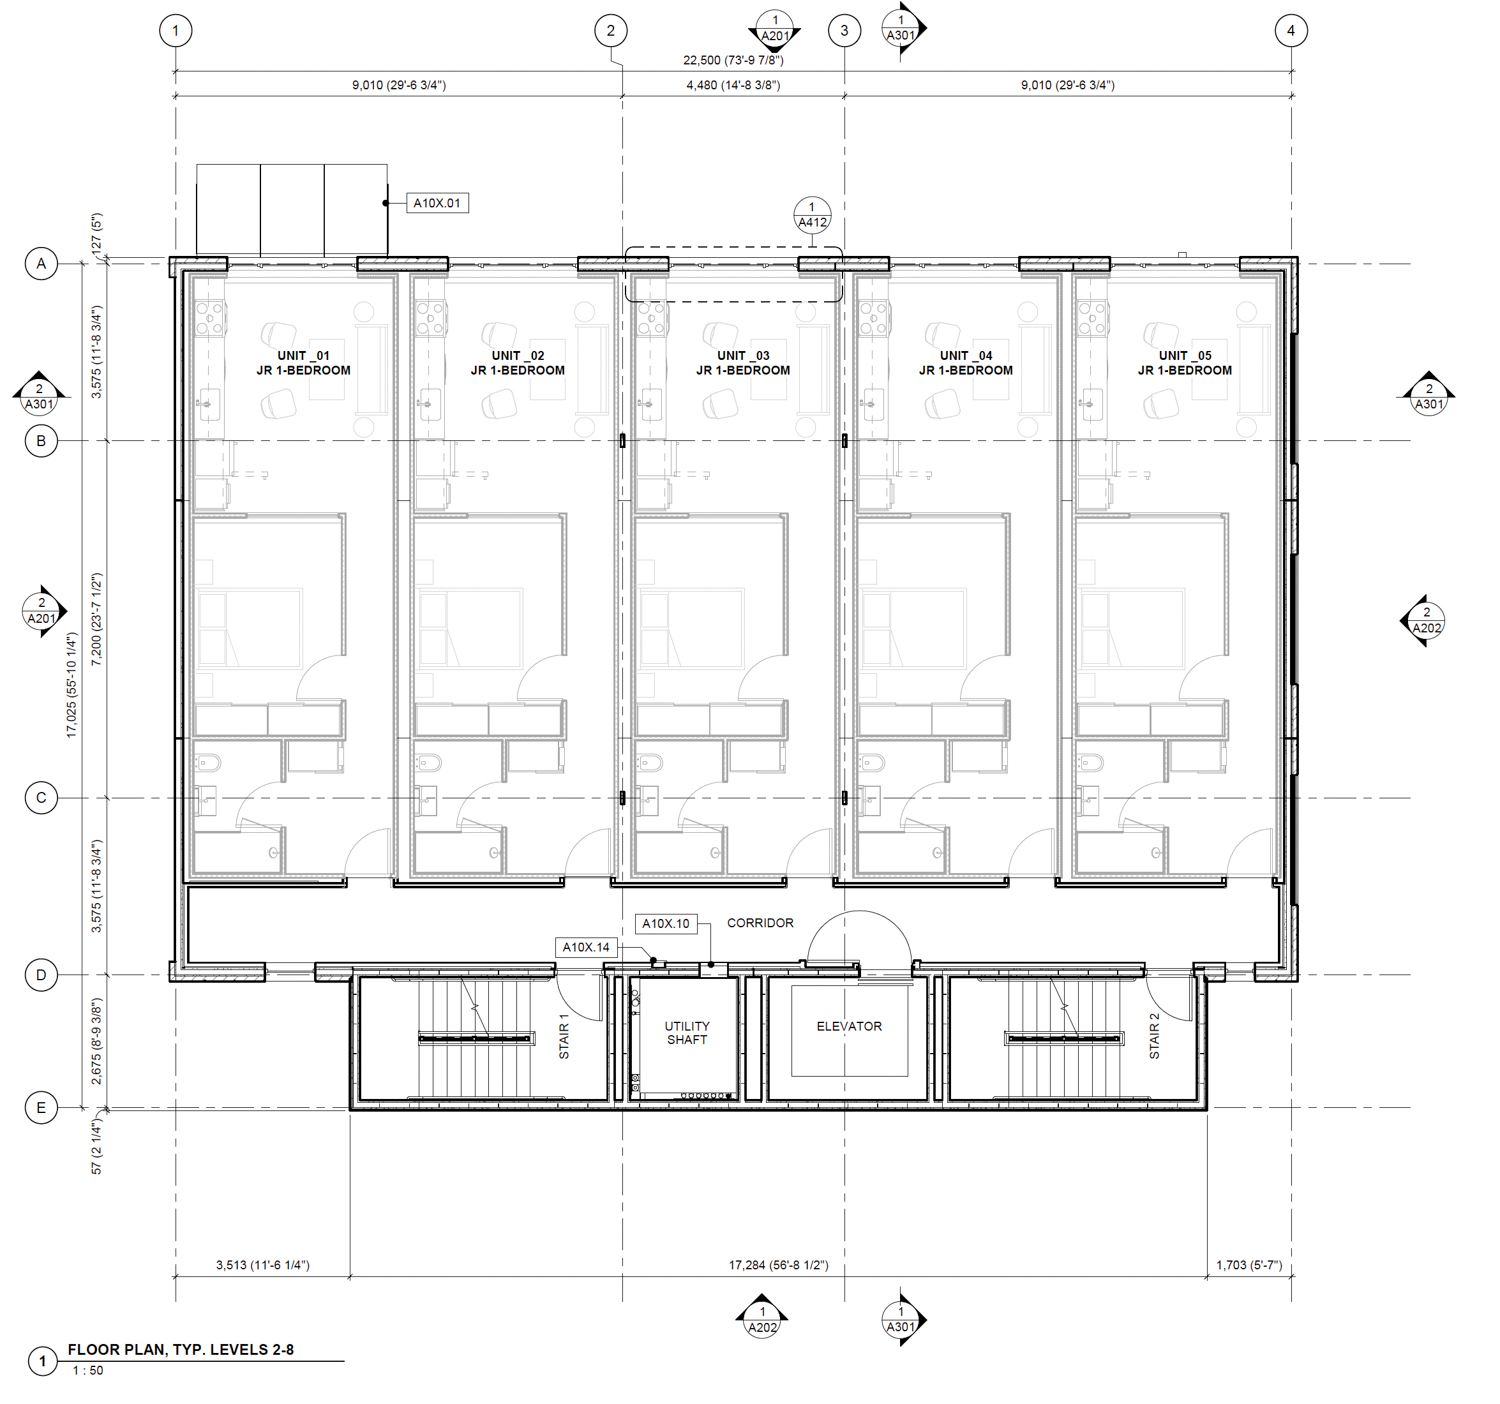 335 3rd Street floor plan for levels two through eight, drawing by R2 Building